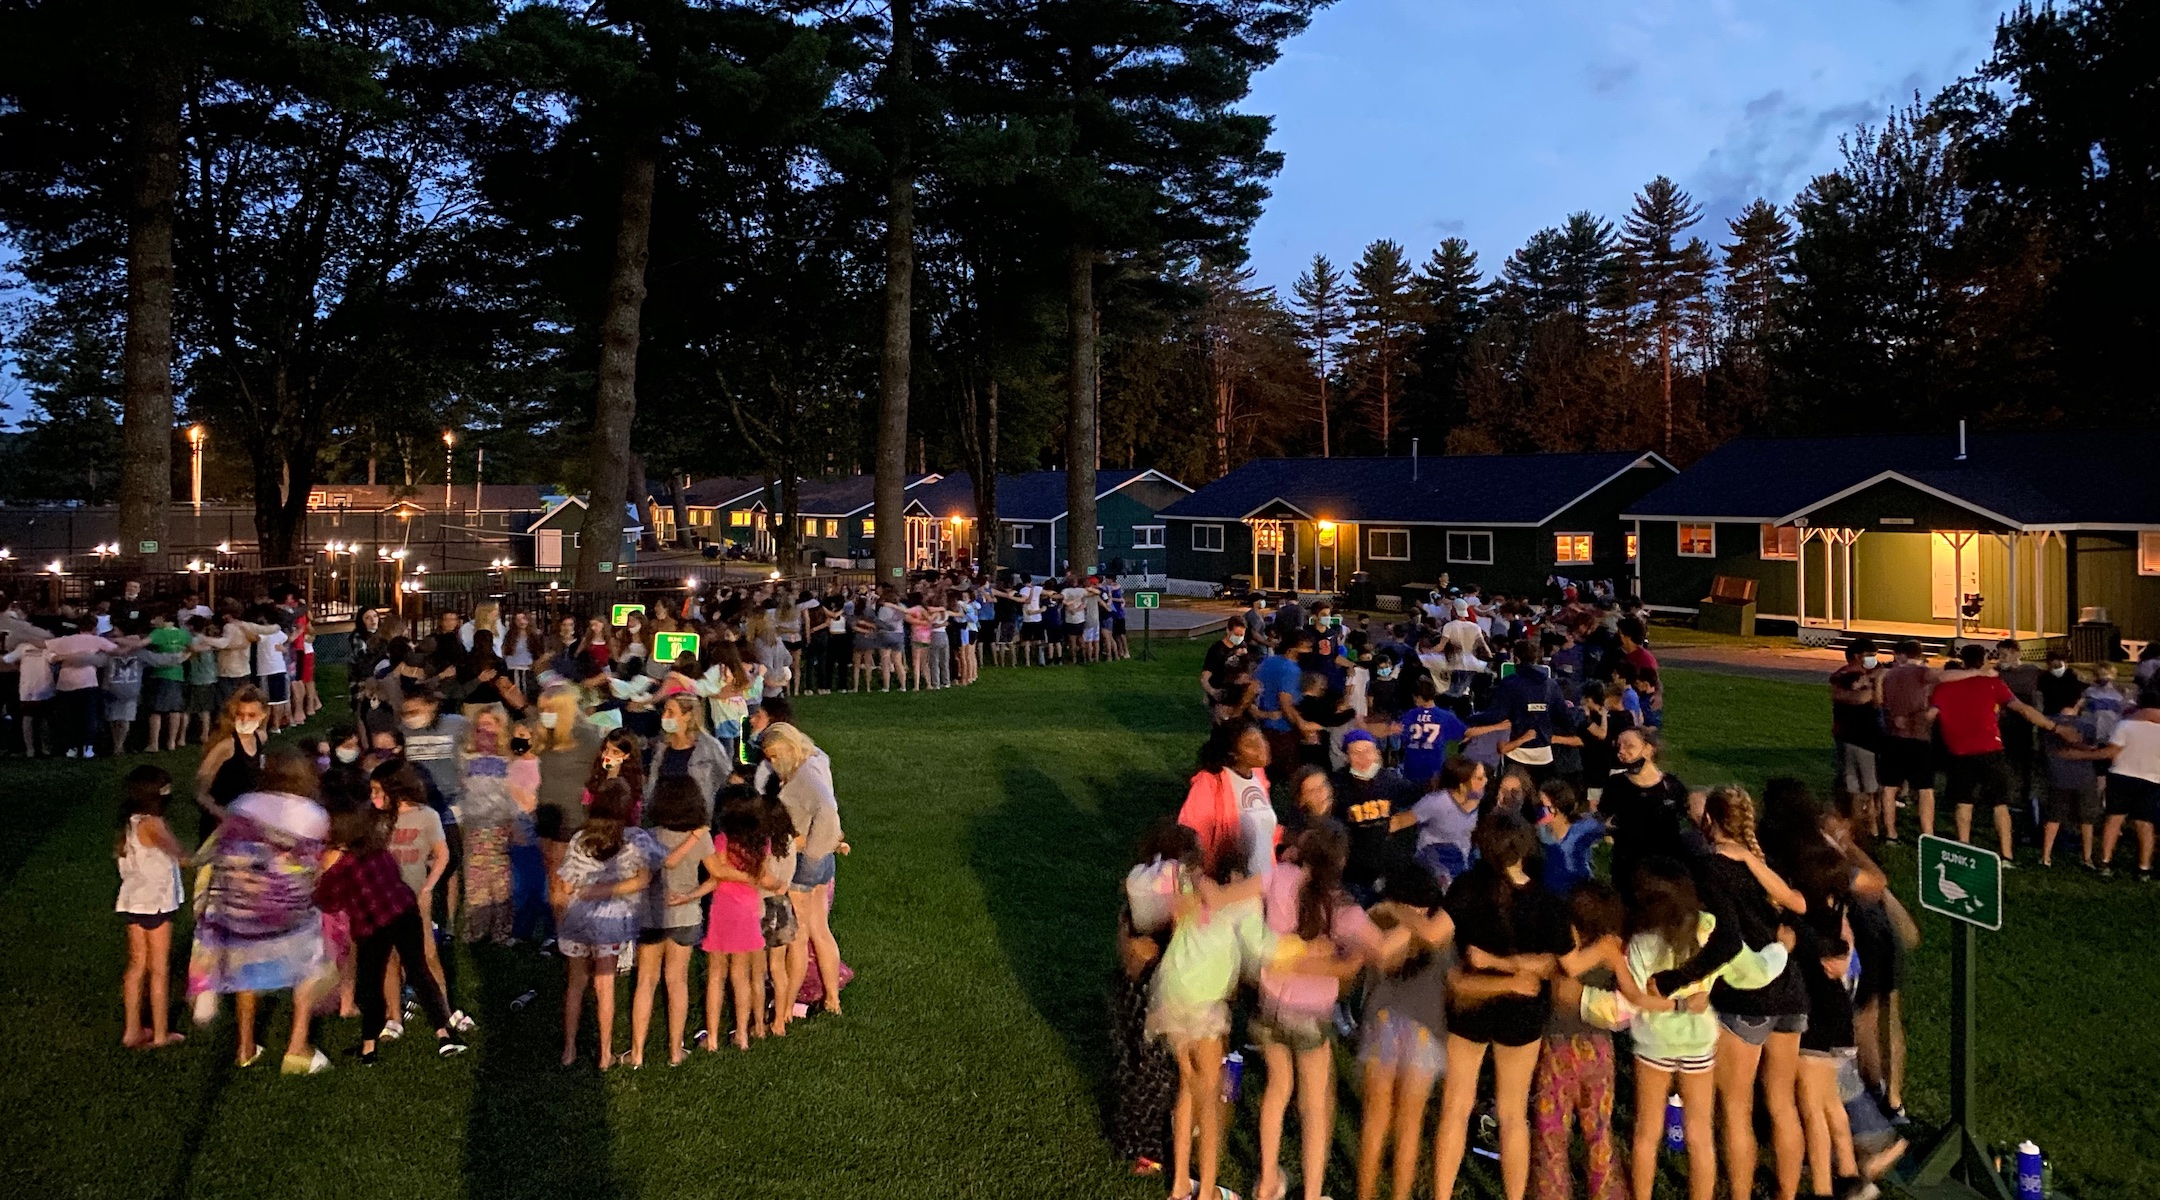 'Kids need camp this summer more than ever before': What Jewish summer camp will look...